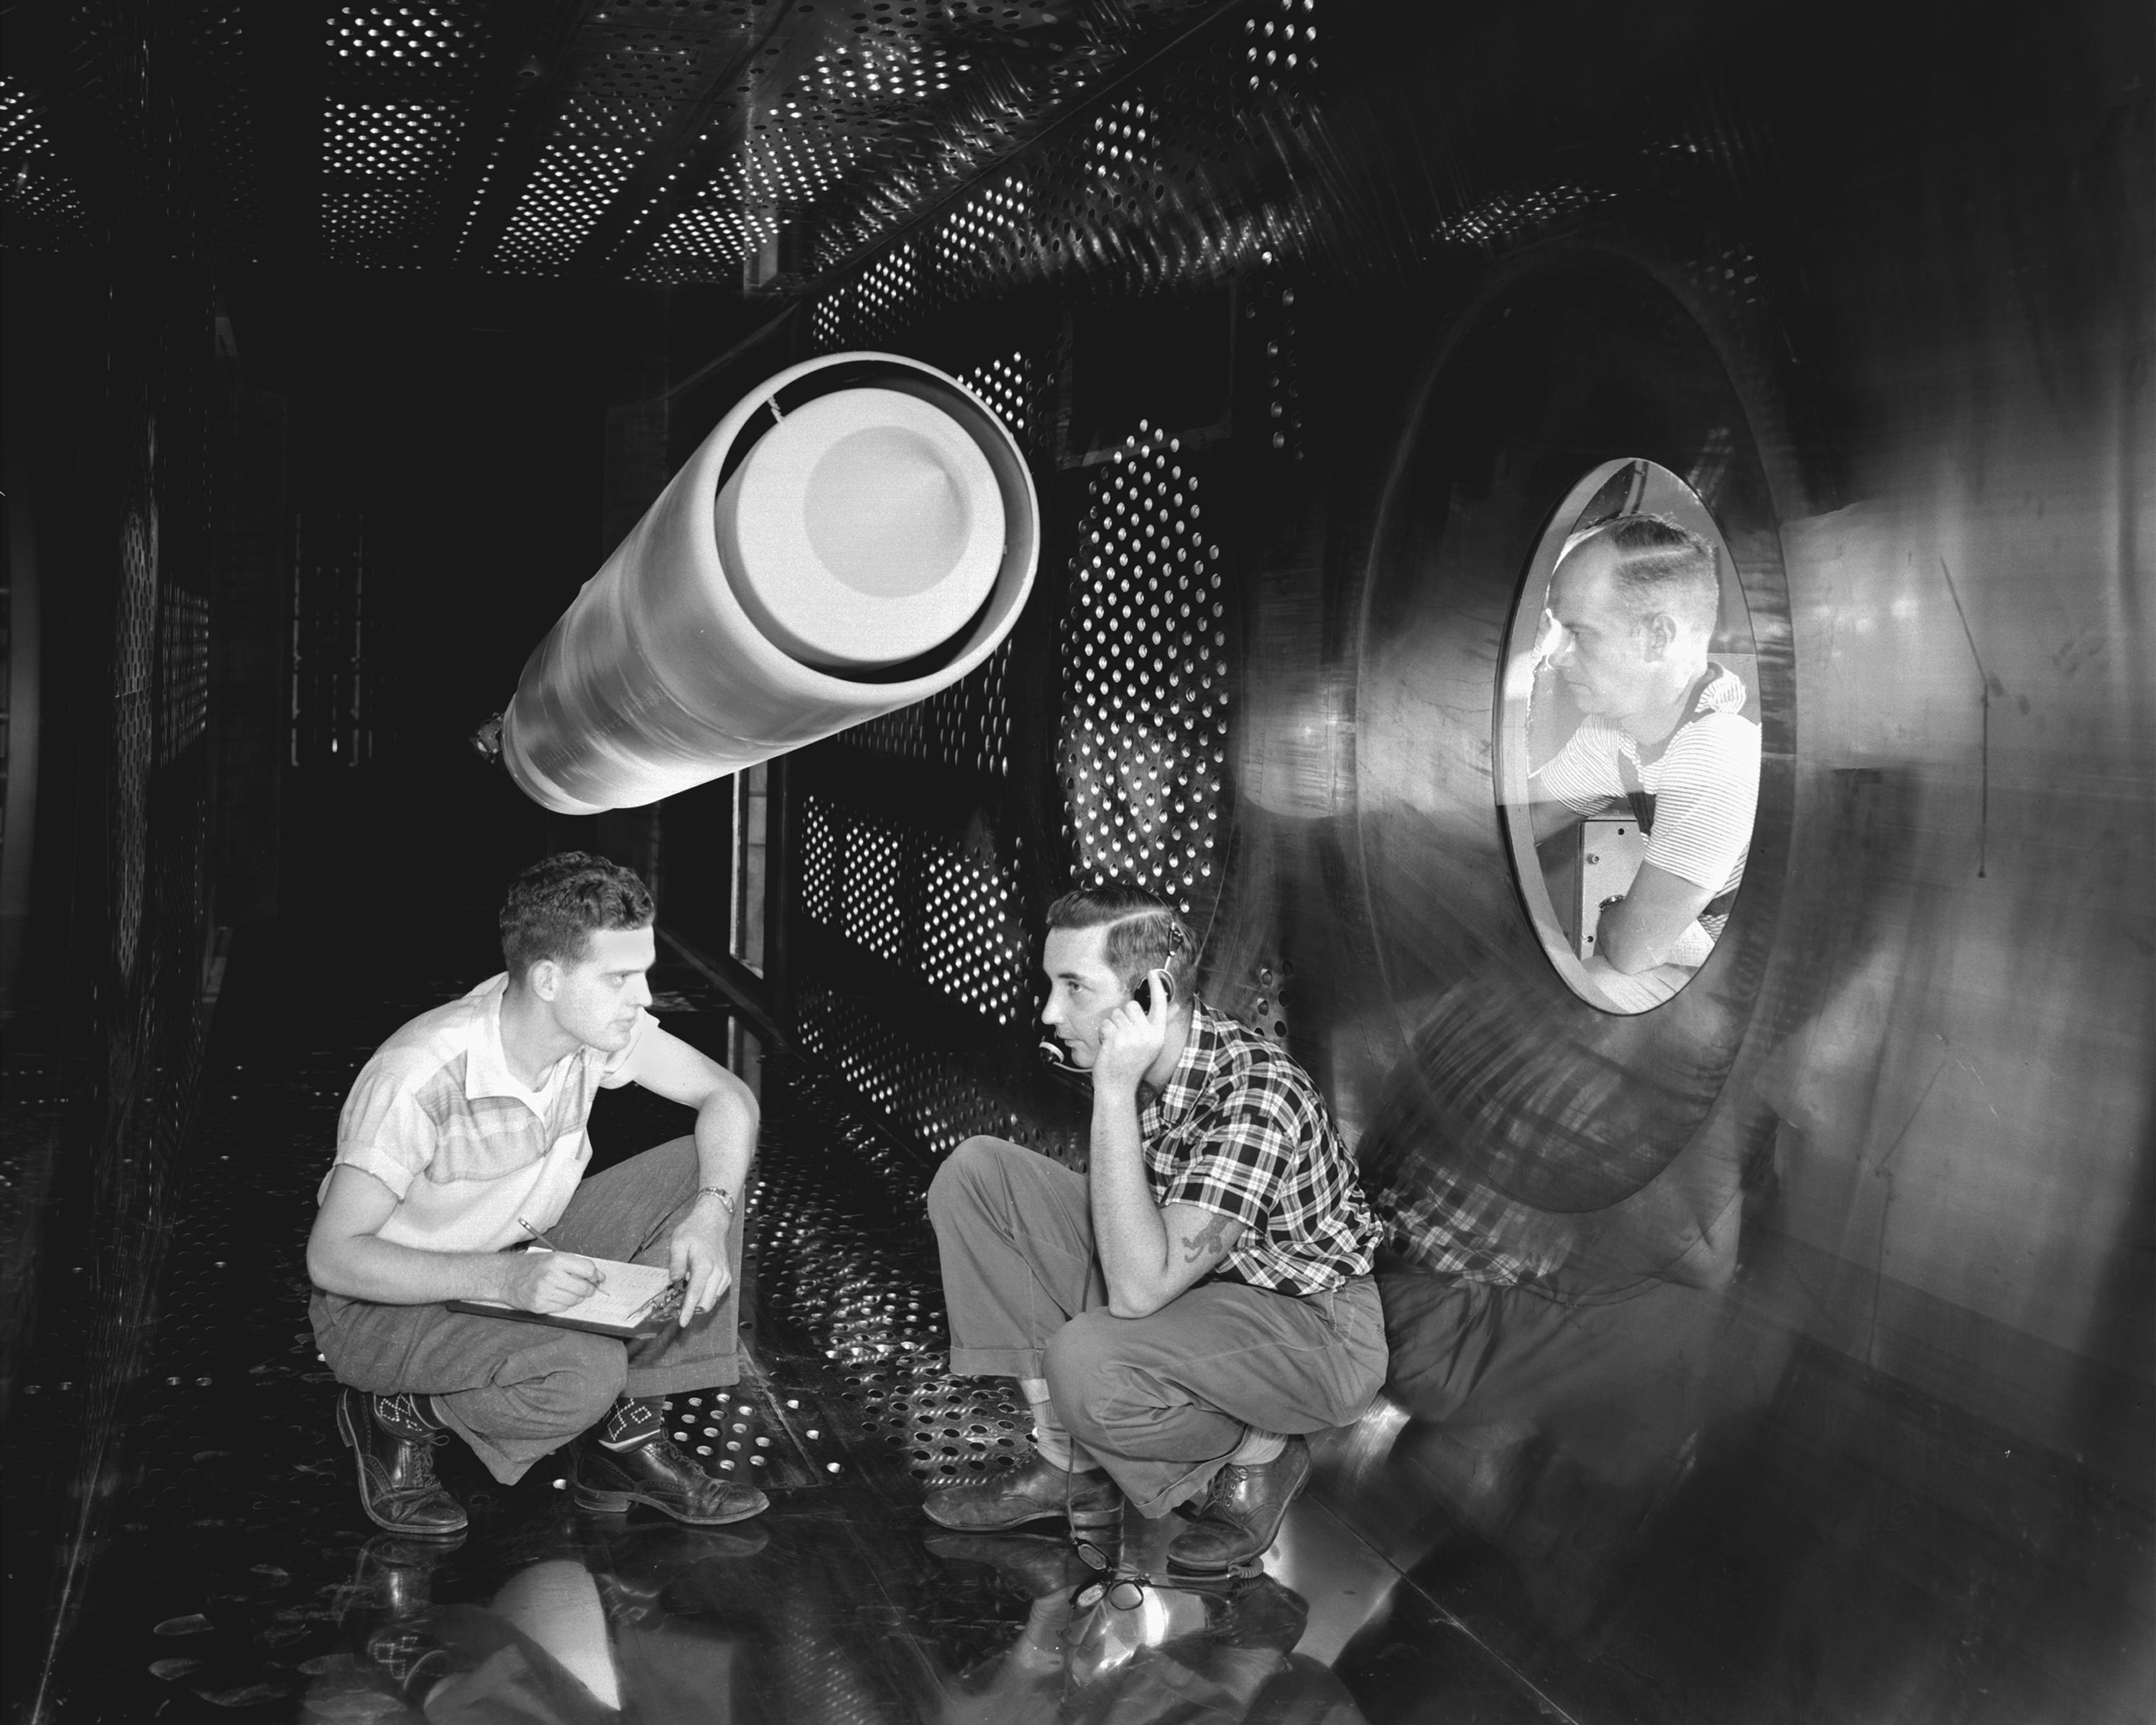 8ft x 6ft Supersonic Wind Tunnel Test-Section showing changes made in Stainless Steel walls with 17 inch inlet model installation. The model is the ACN Nozzle model used for aircraft engines. The Supersonic Wind Tunnel is located in the Lewis Flight Propulsion Laboratory, now John H. Glenn Research Center.